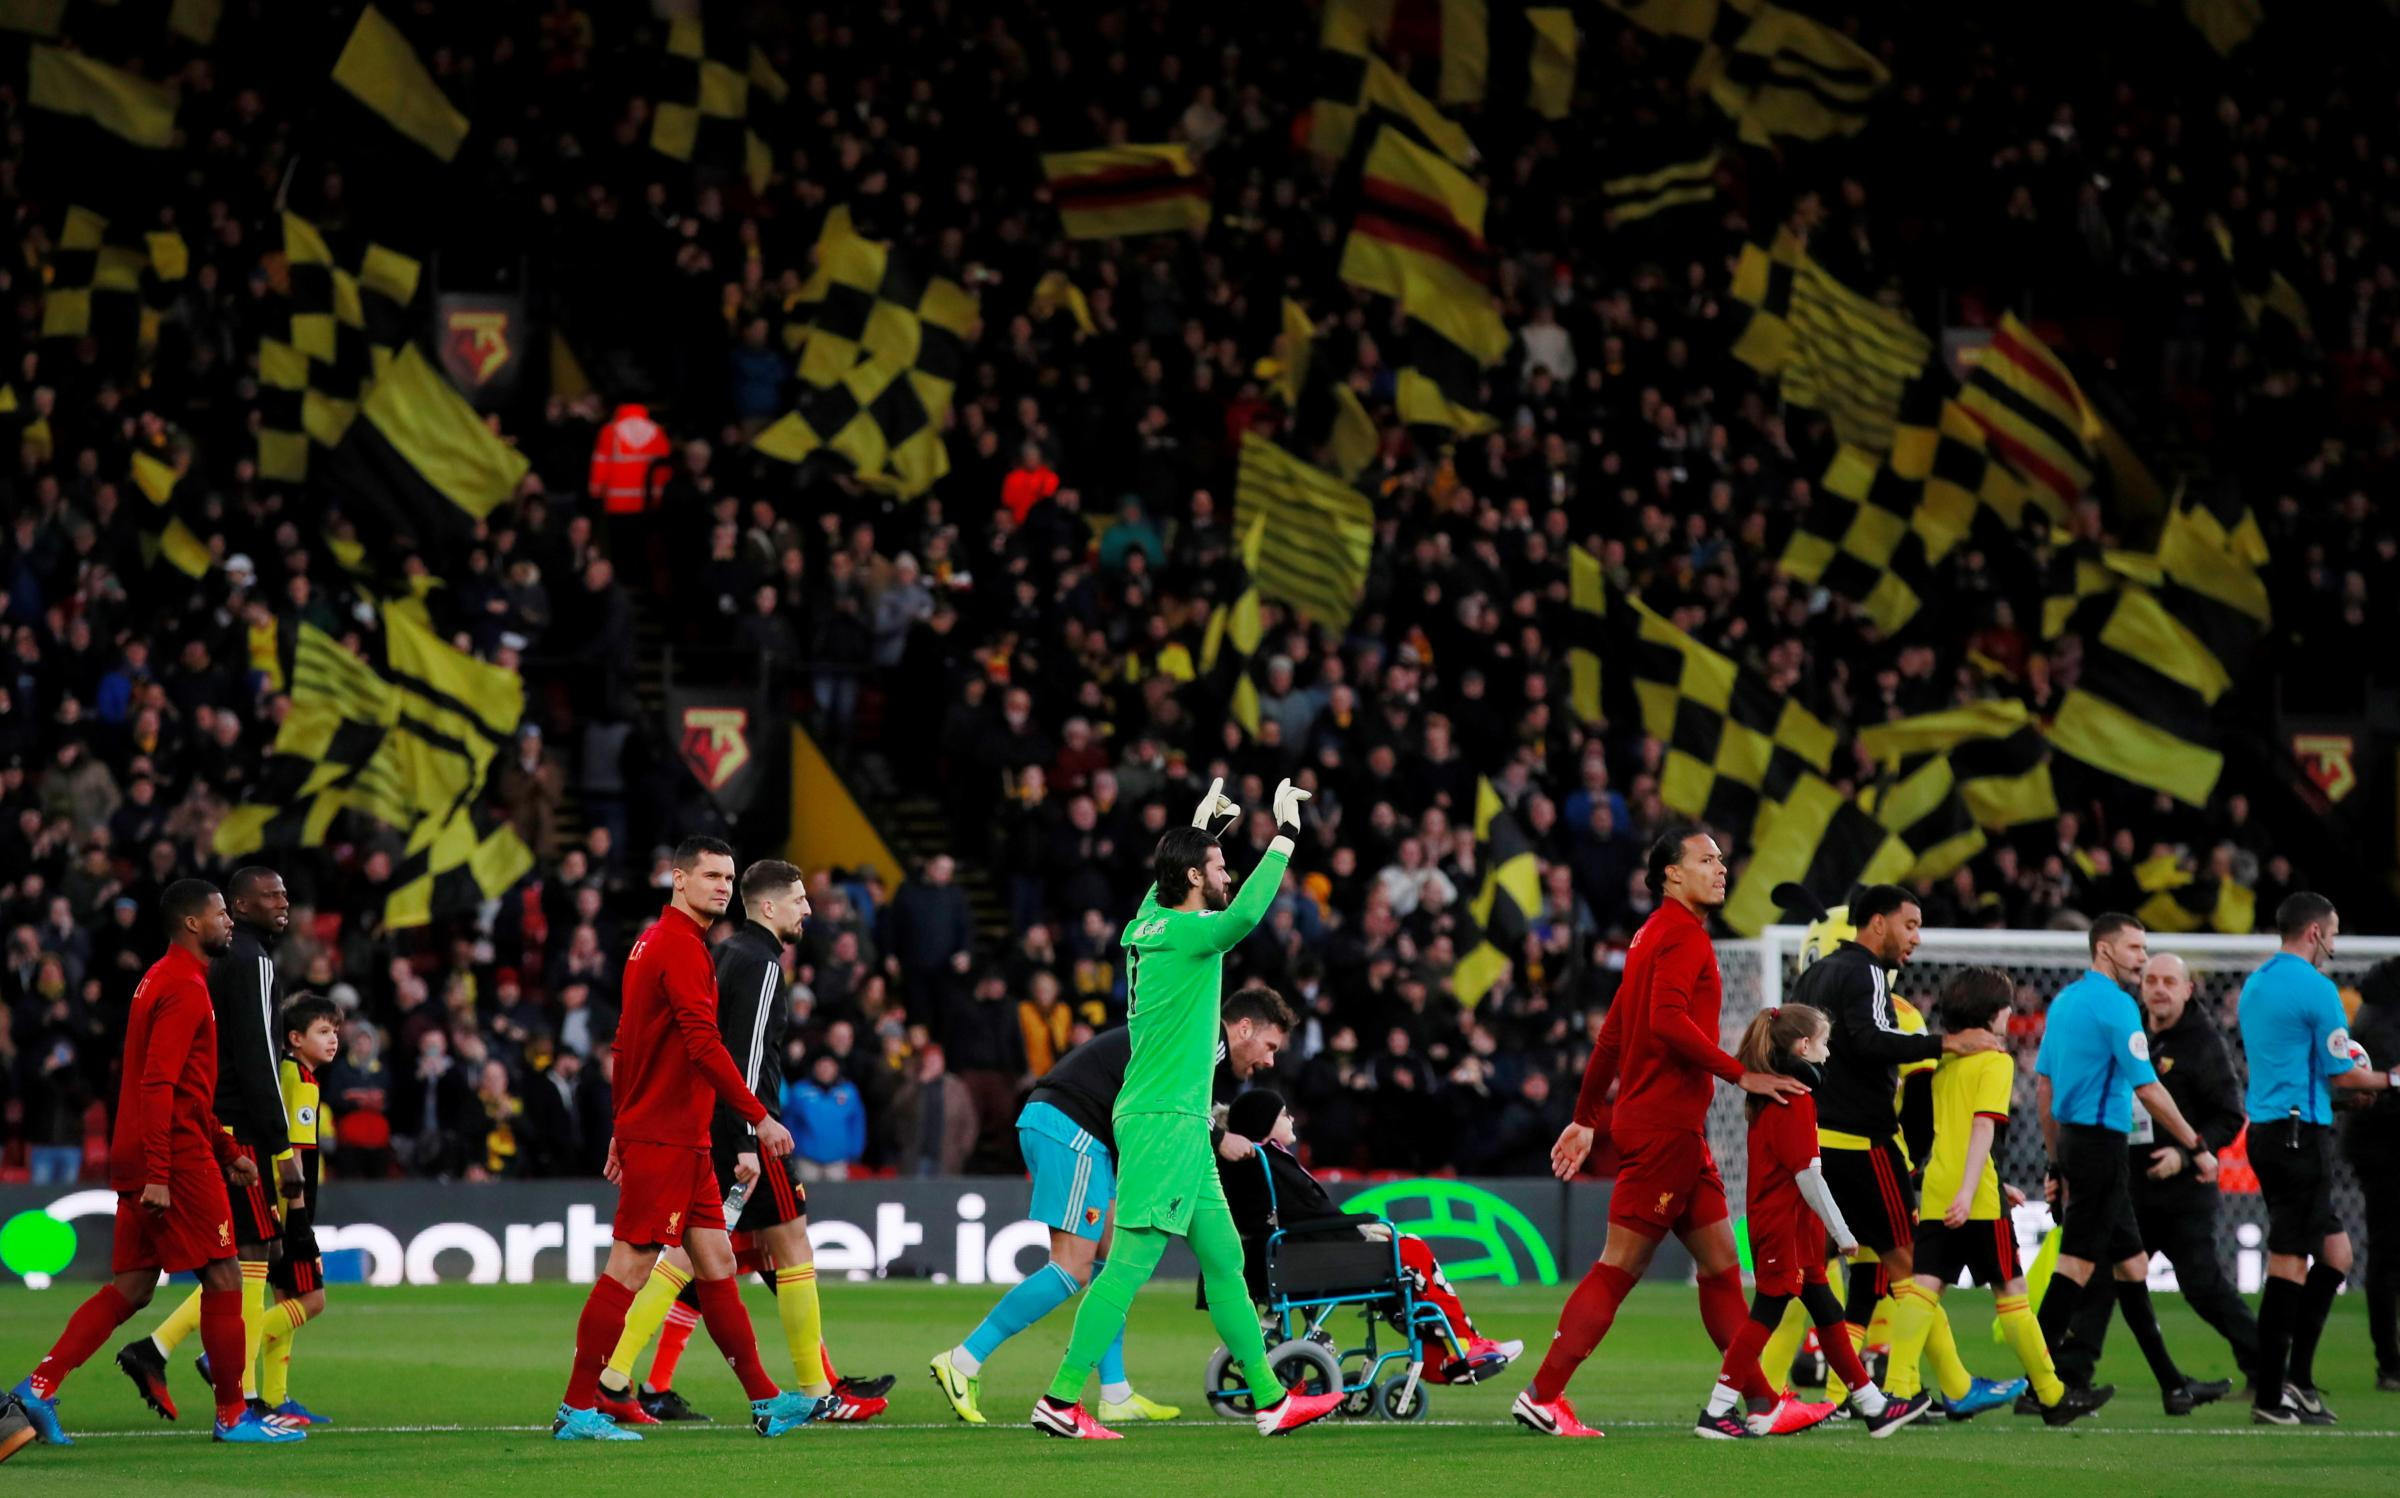 What do Watford fans miss most about match day?